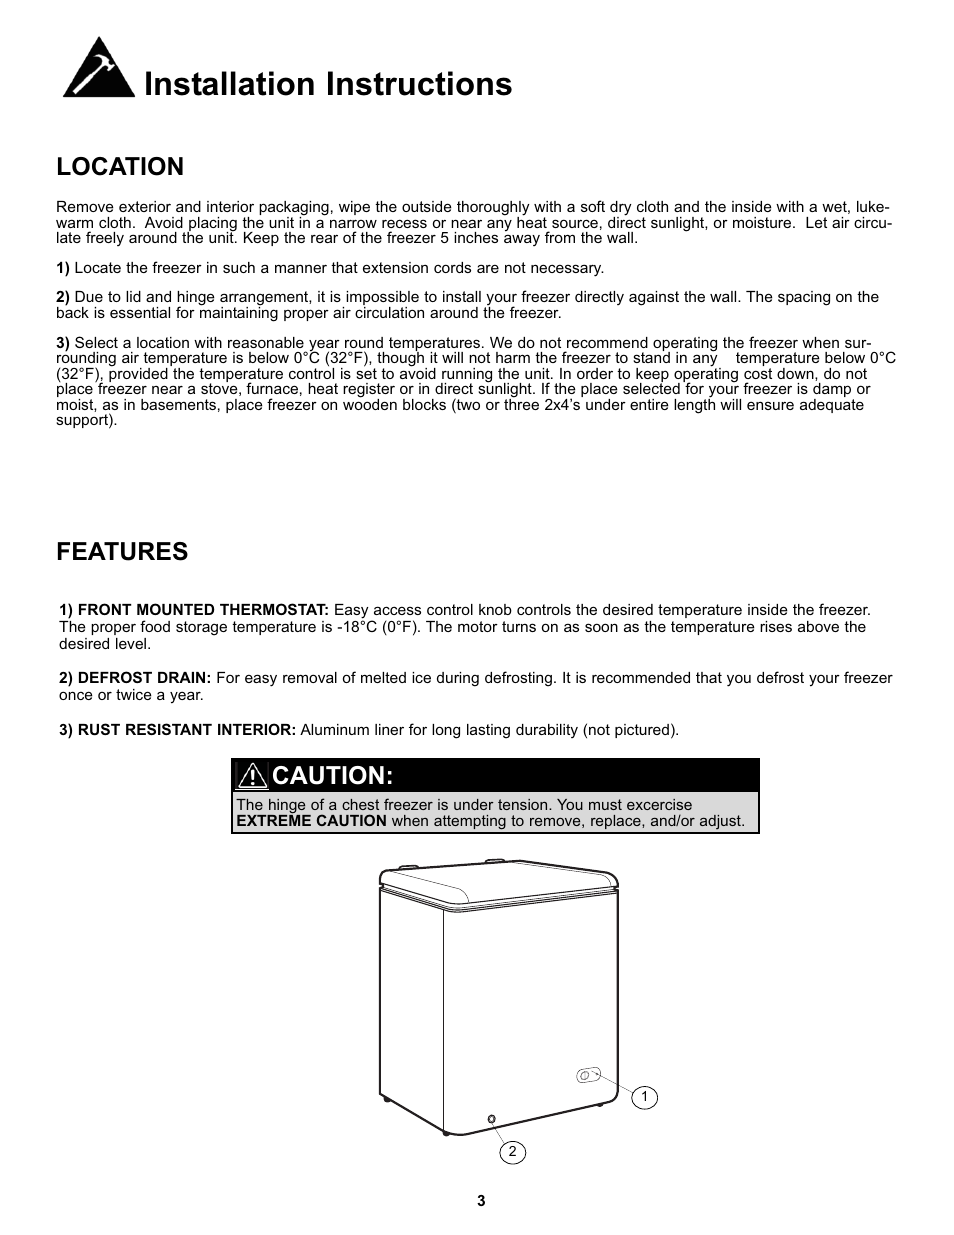 Installation instructions, Location features, Caution